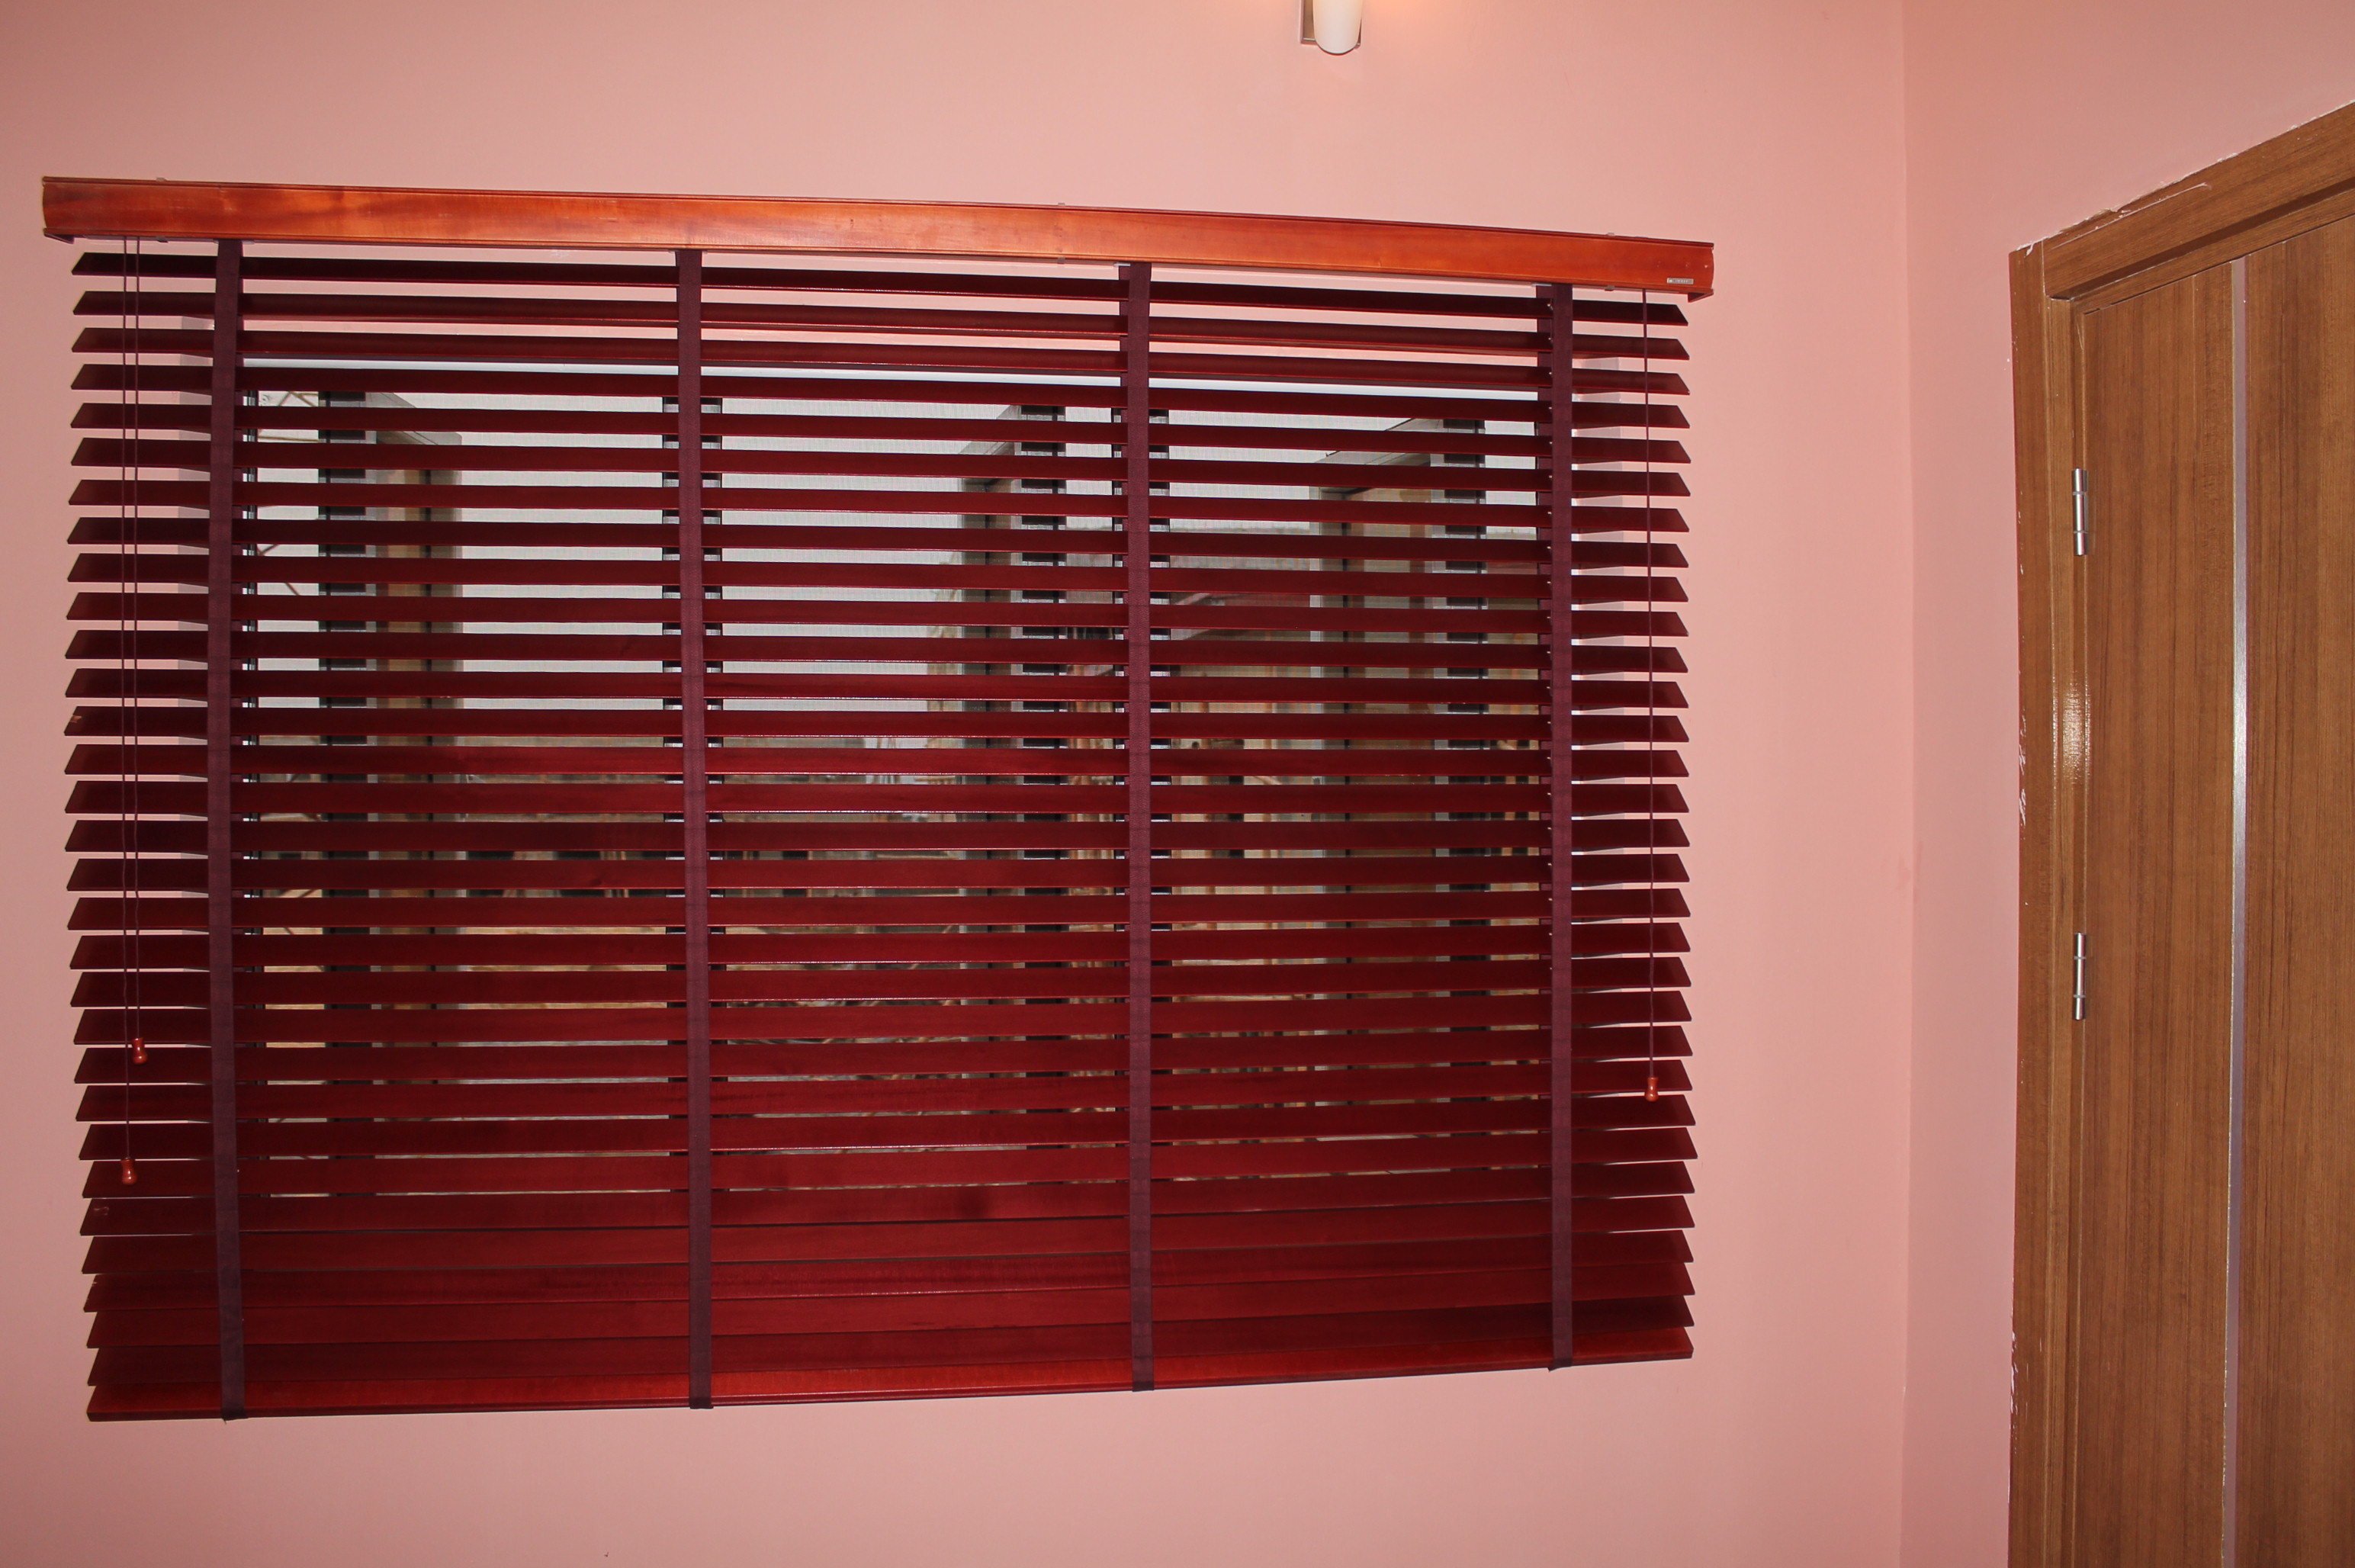 decoration depot shutter black for and design wall vertical curtains luxury inspirational ideas home blinds decorating door rod white patio of with